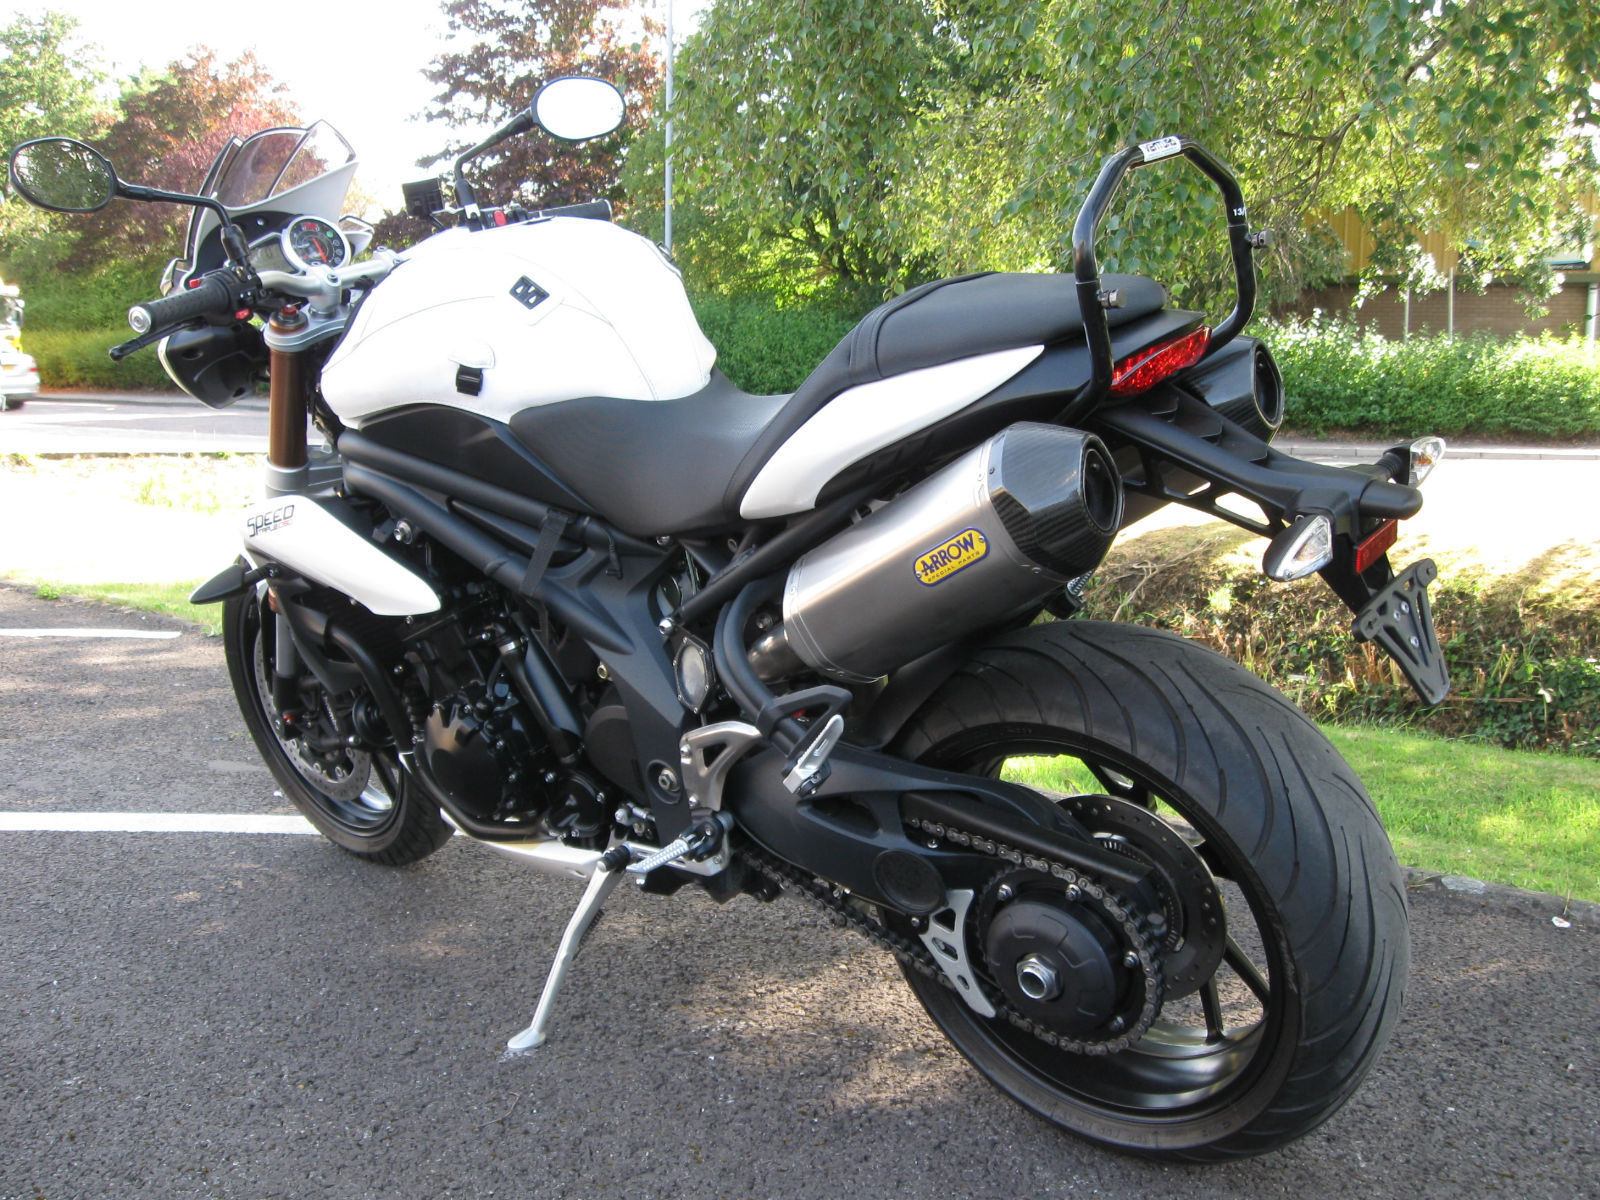 triumph speed triple 1050 abs 11 reg arrow cans ventura. Black Bedroom Furniture Sets. Home Design Ideas